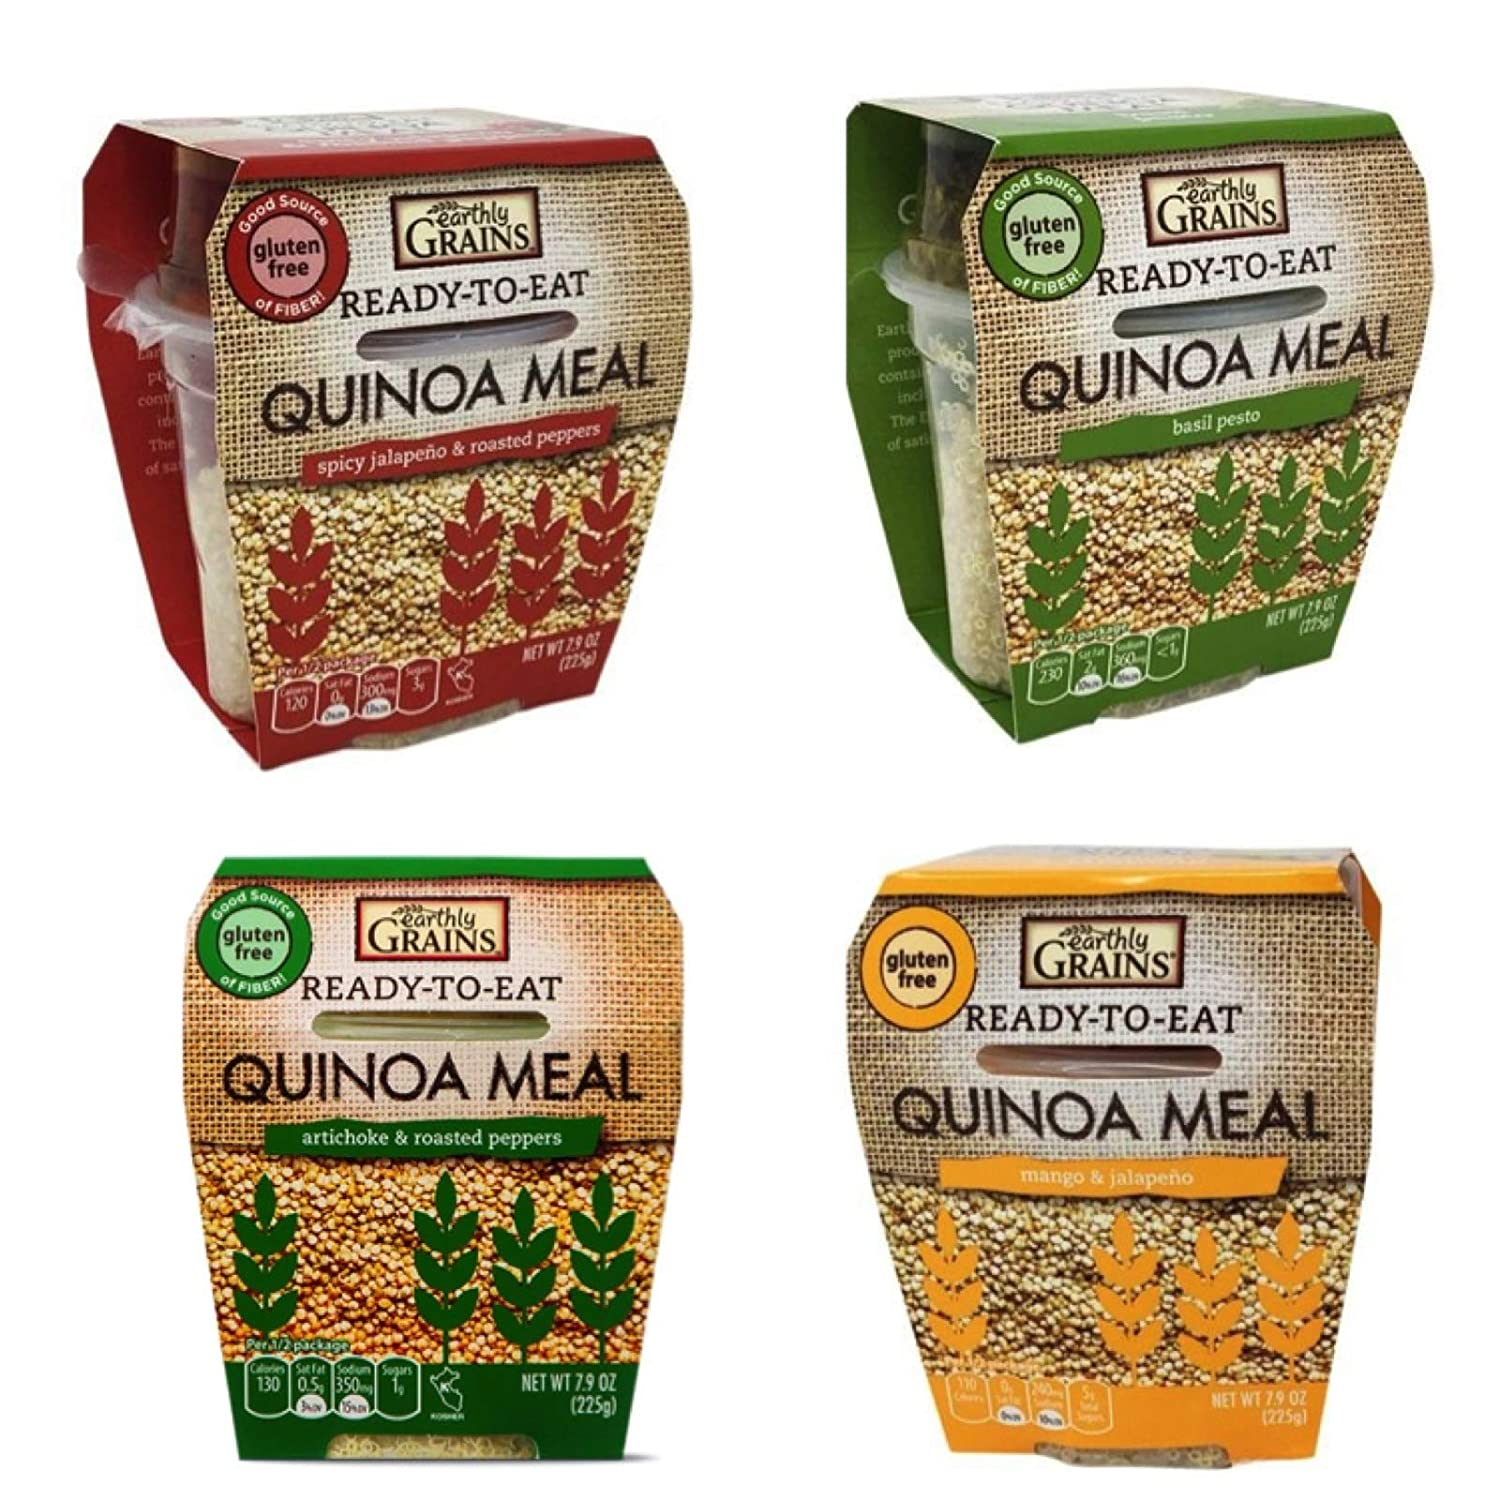 Earthly Grains Quinoa Ready to Eat MEAL variety pack - 8 oz